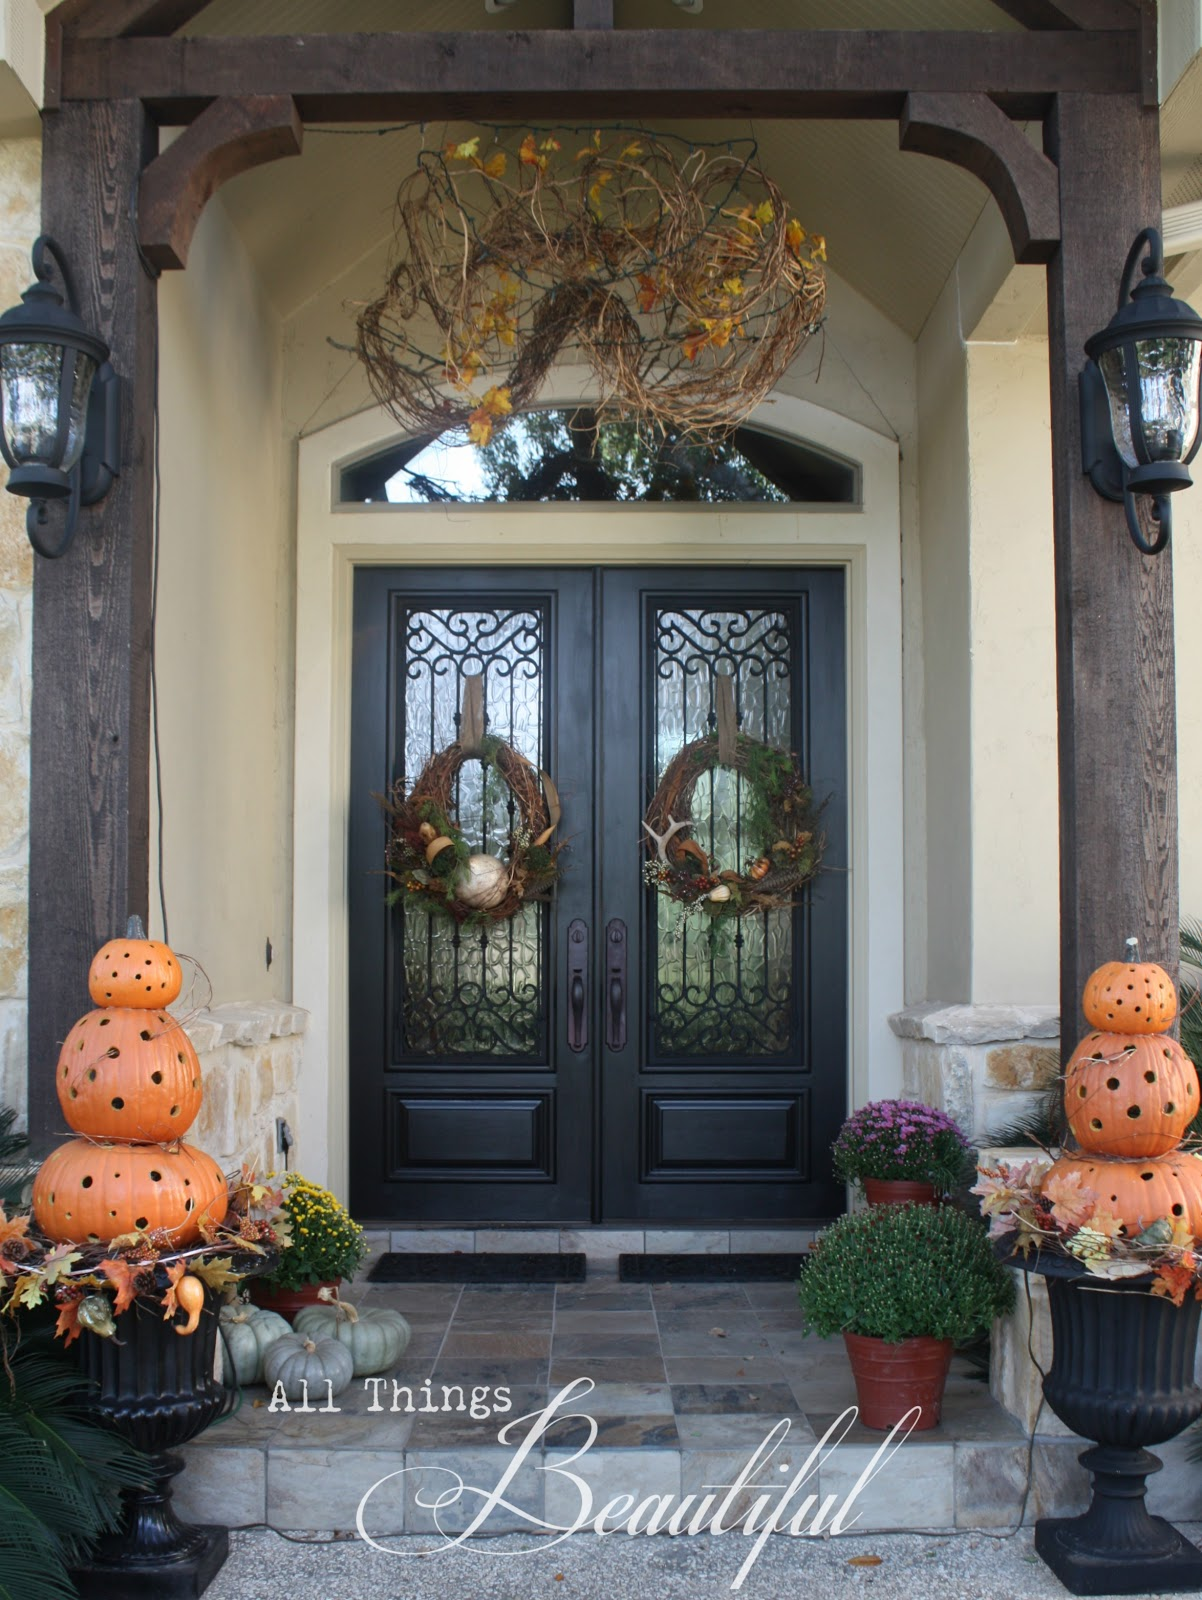 All Things Beautiful Fall Wreath Porch Decor